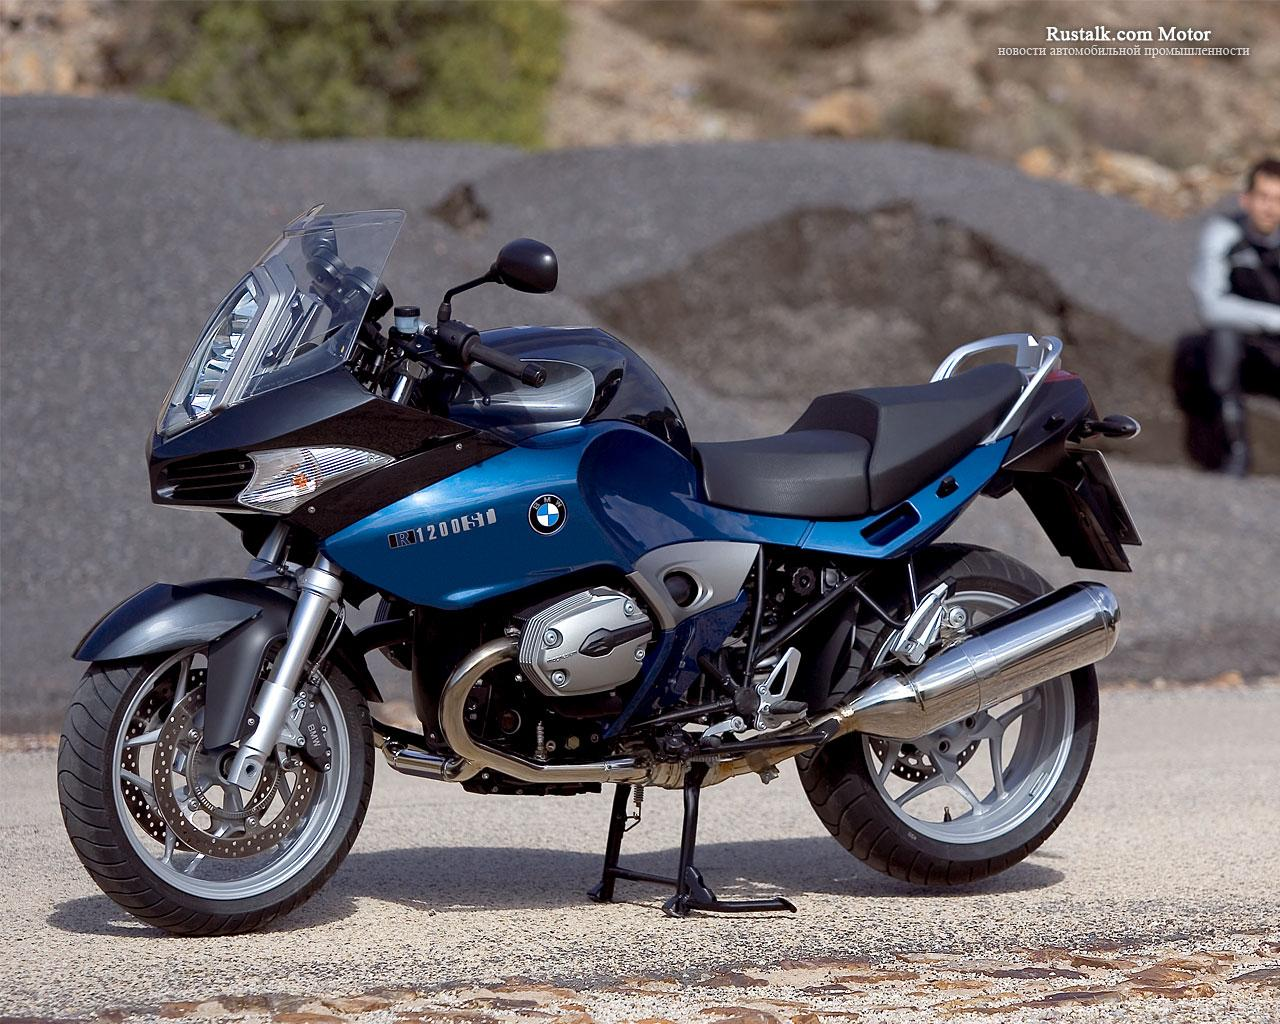 bmw r1200st picture 19724 bmw photo gallery. Black Bedroom Furniture Sets. Home Design Ideas